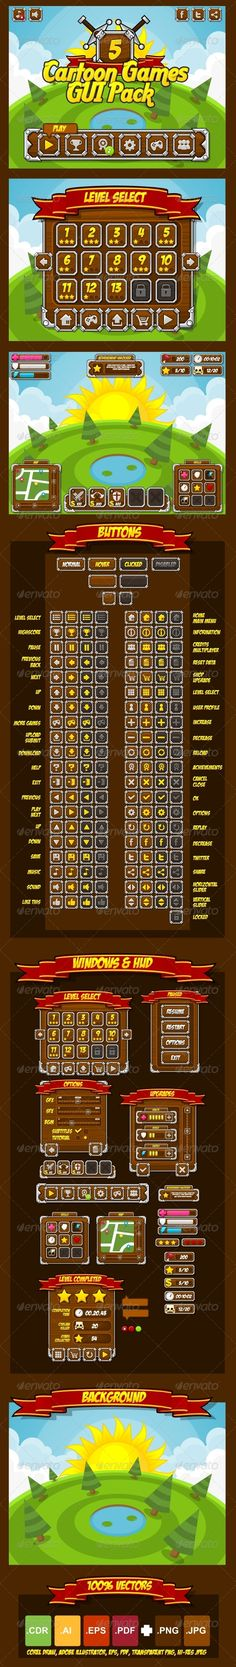 Cartoon Games GUI Pack 5  #tower #medieval • Download ➝ https://graphicriver.net/item/cartoon-games-gui-pack-5/4708033?ref=pxcr